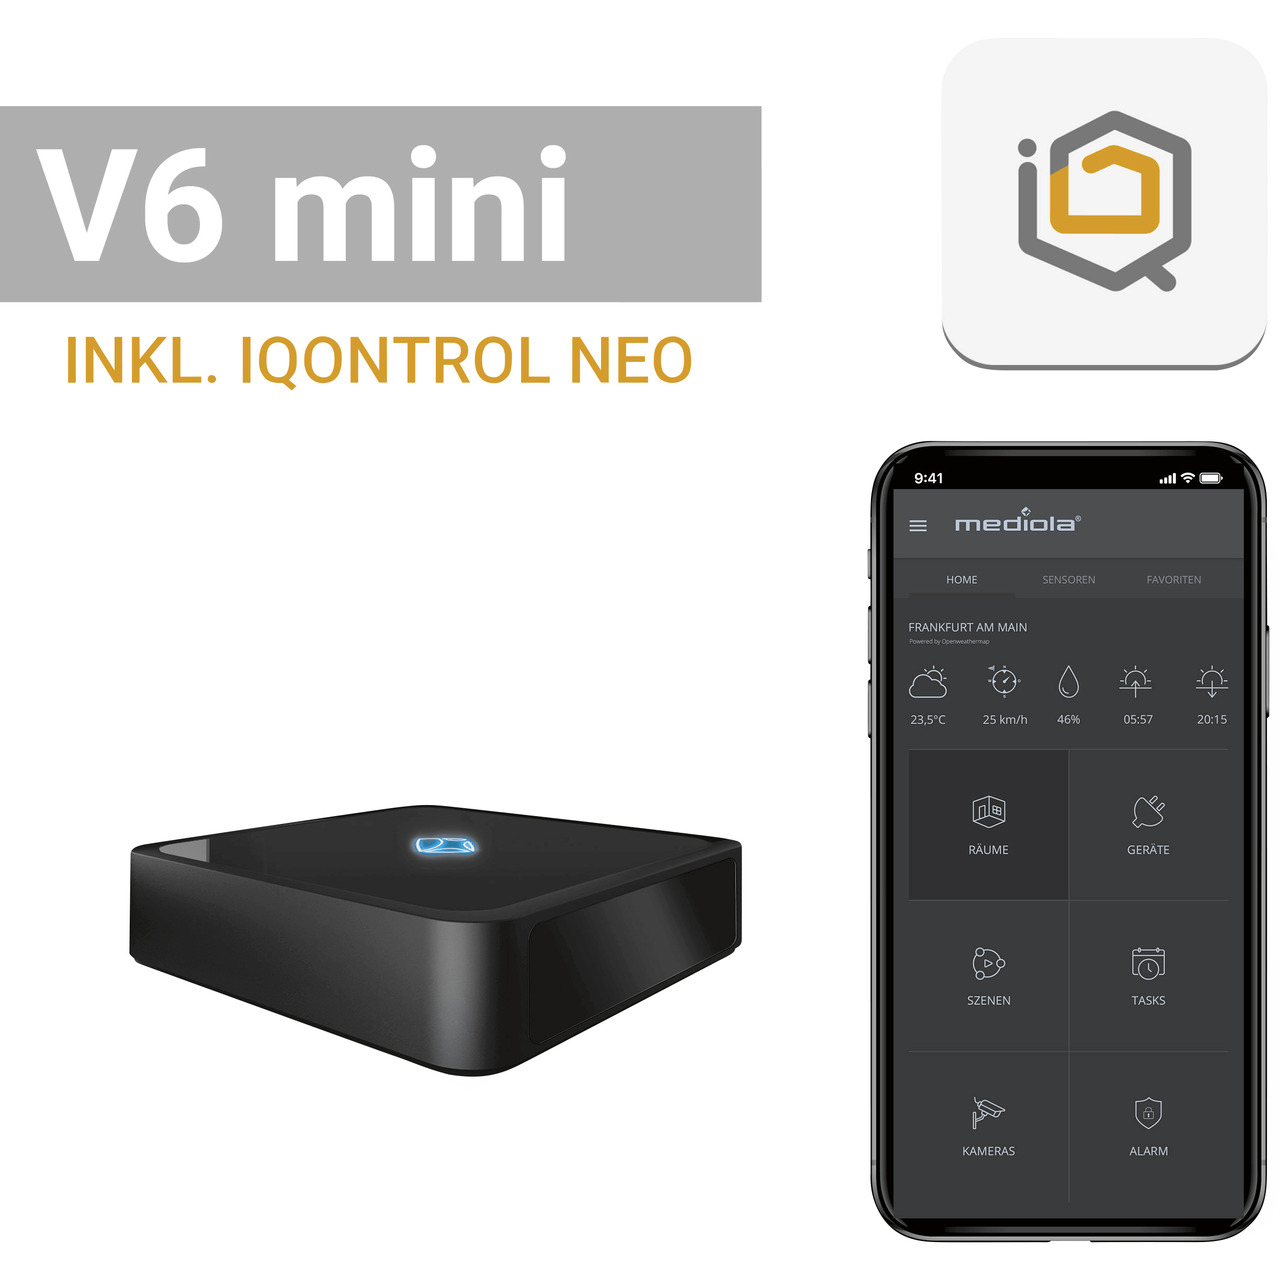 mediola AIO Gateway V6 mini- inkl- IQONTROL NEO-App für z-B- Homematic IP- Homematic und FS20